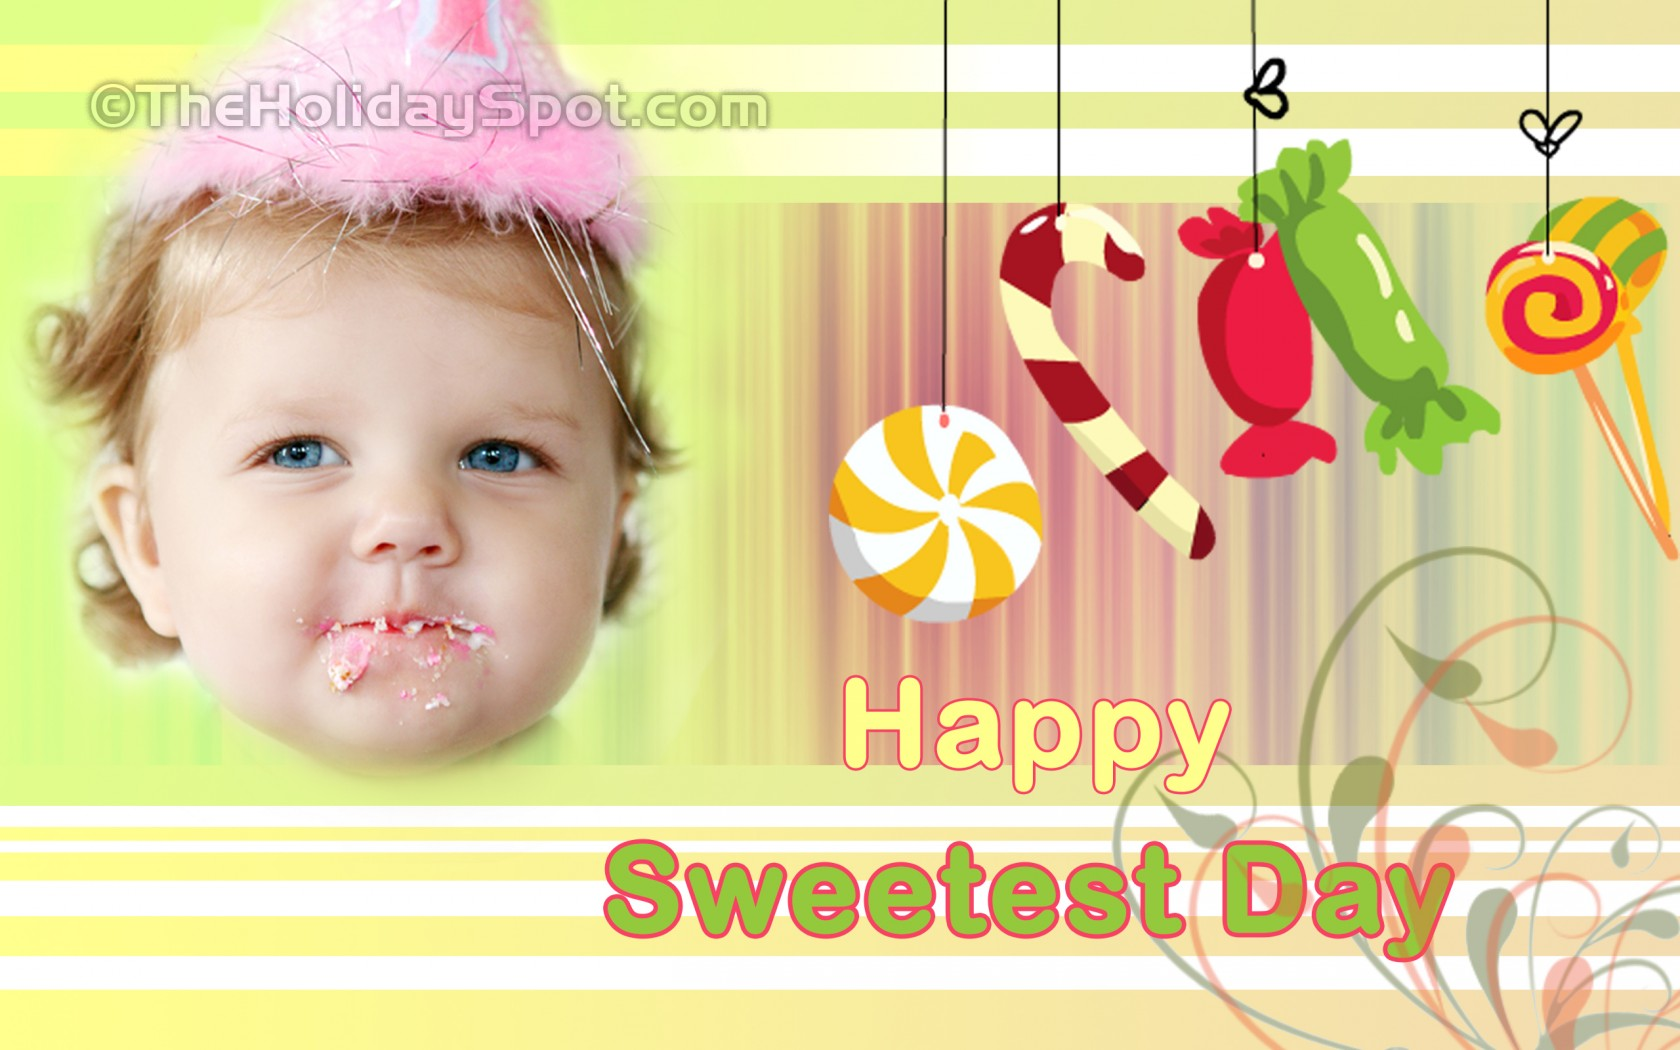 Sweetest Day Wallpaper 3  1680X1050